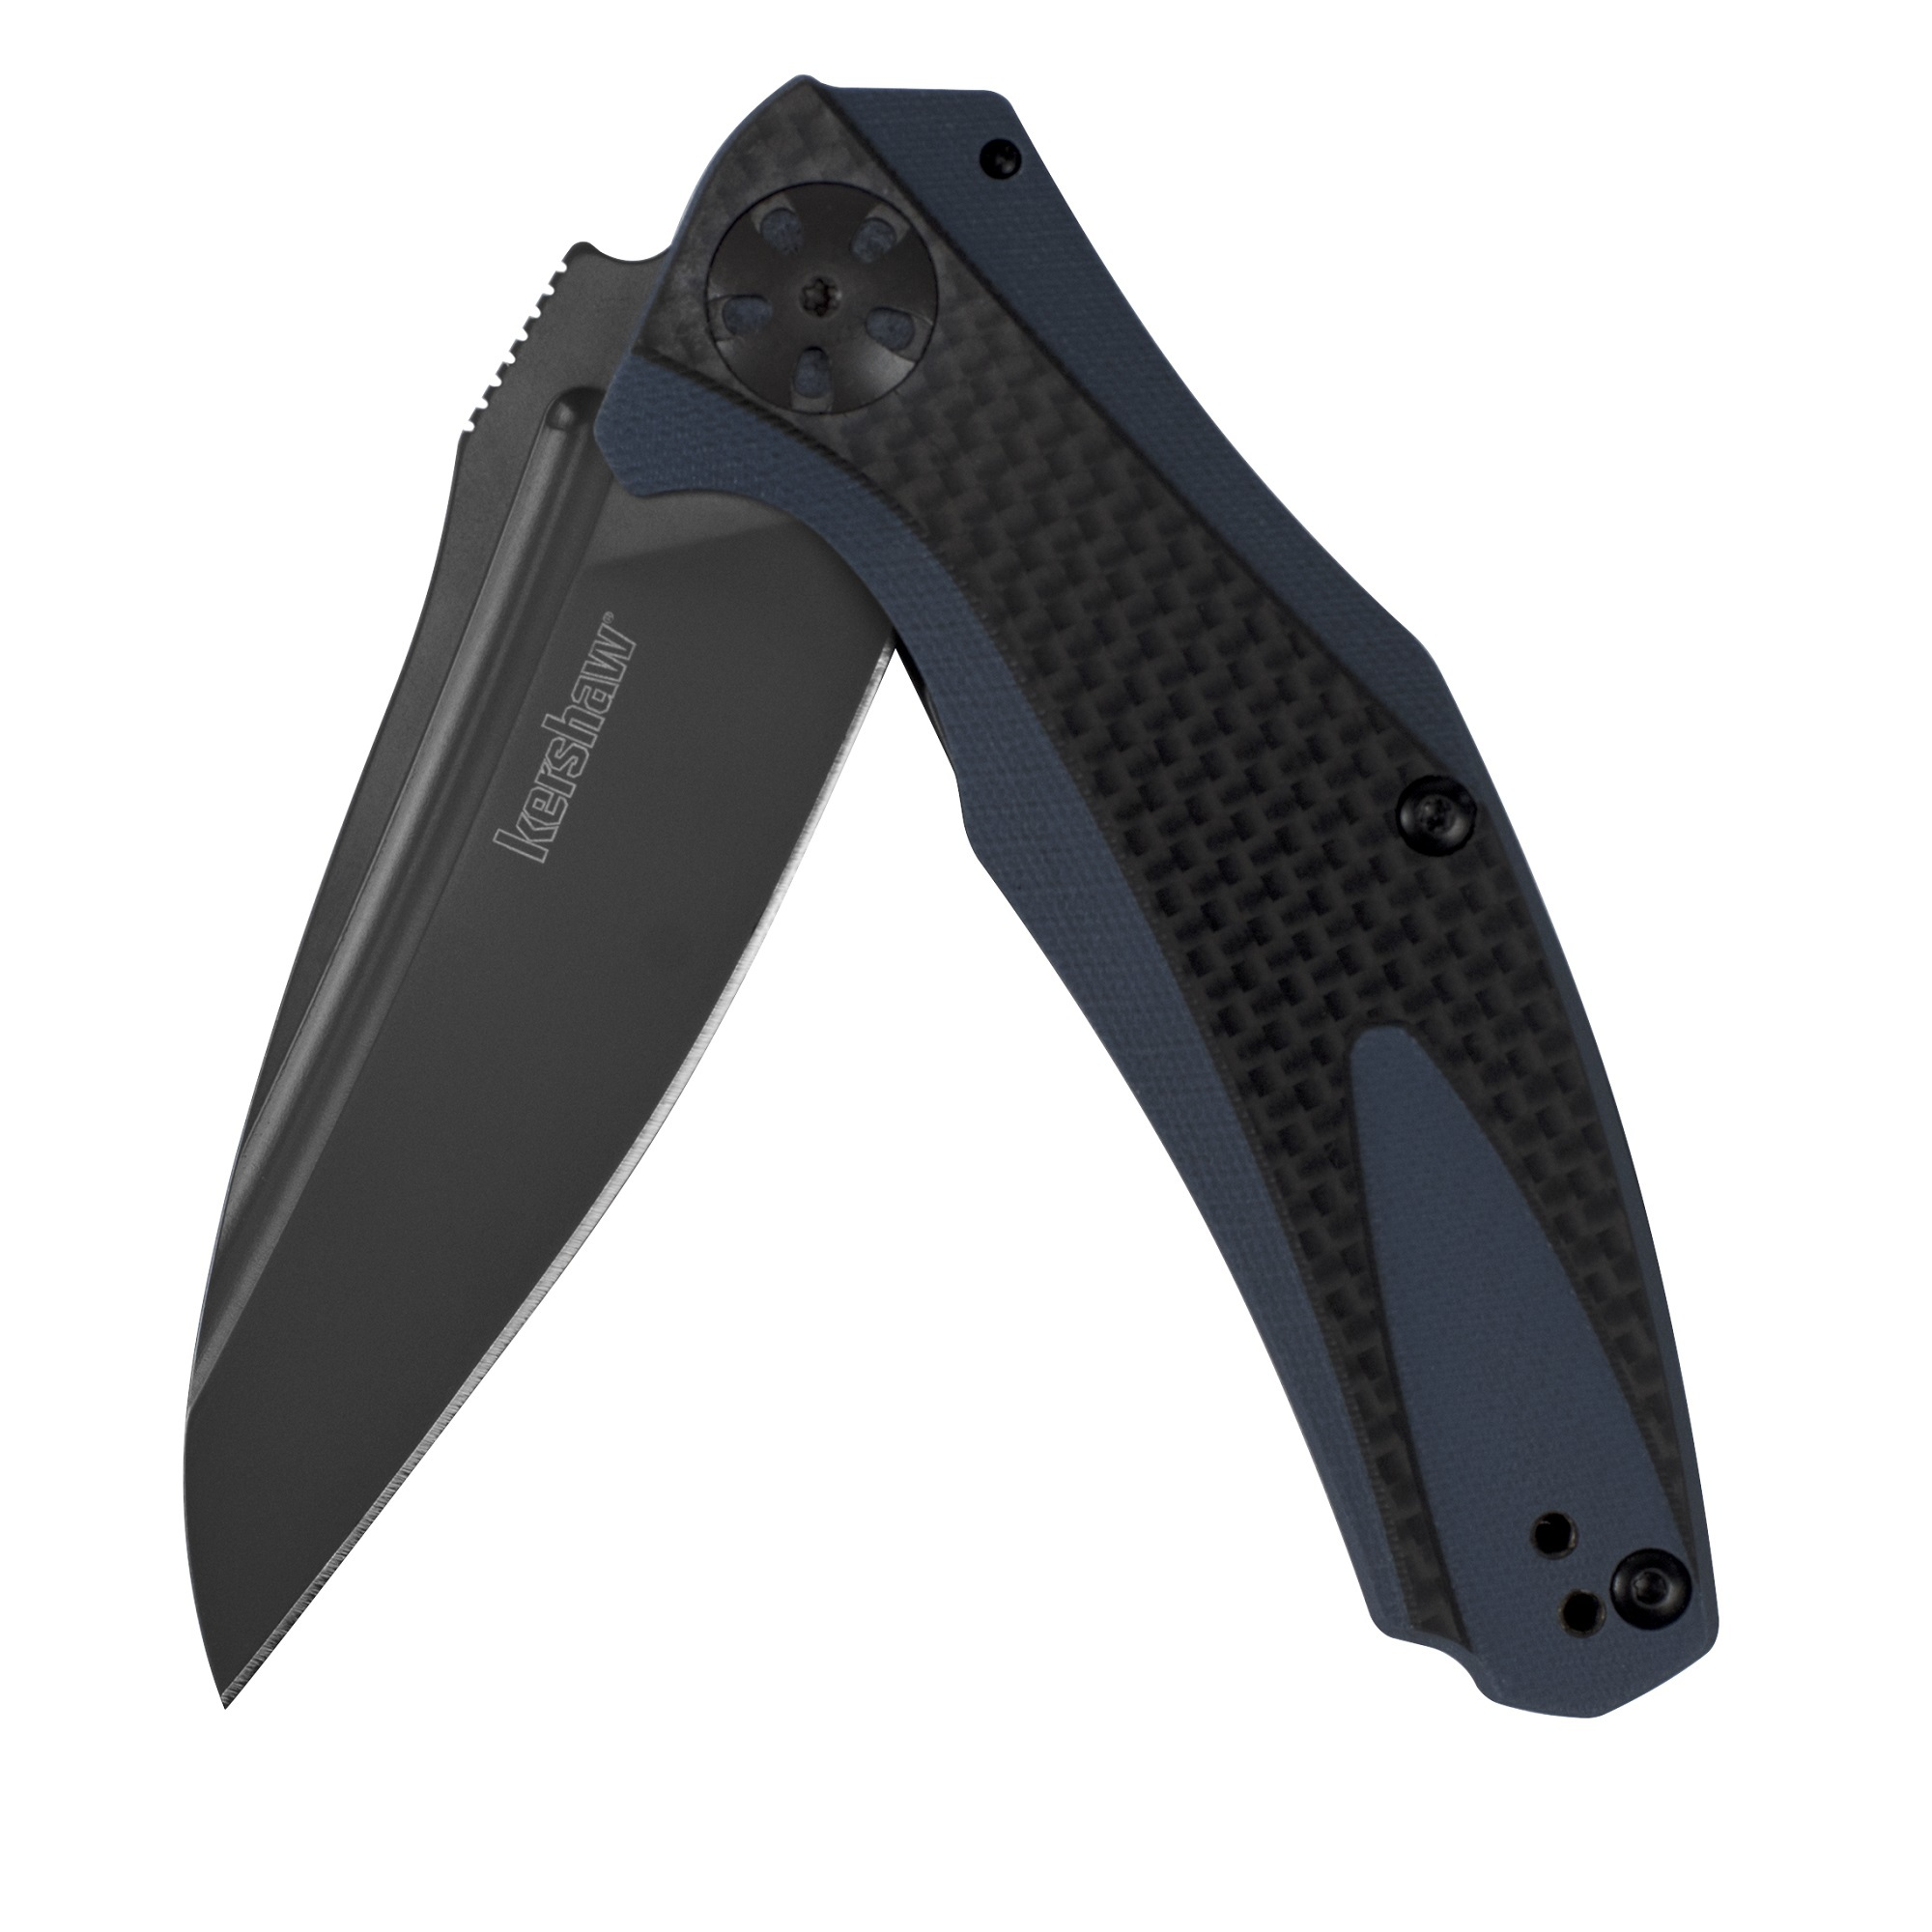 Kershaw Natrix-Carbon Fiber Pocket Knife (7007CF); 3.25 In. 8Cr13MoV Titanium Carbo-Nitride Coated Blade; 3D-Machined G10 Handle with Carbon Fiber Overlay, Flipper, Reversible Deep-Carry Clip; 2.9 oz.